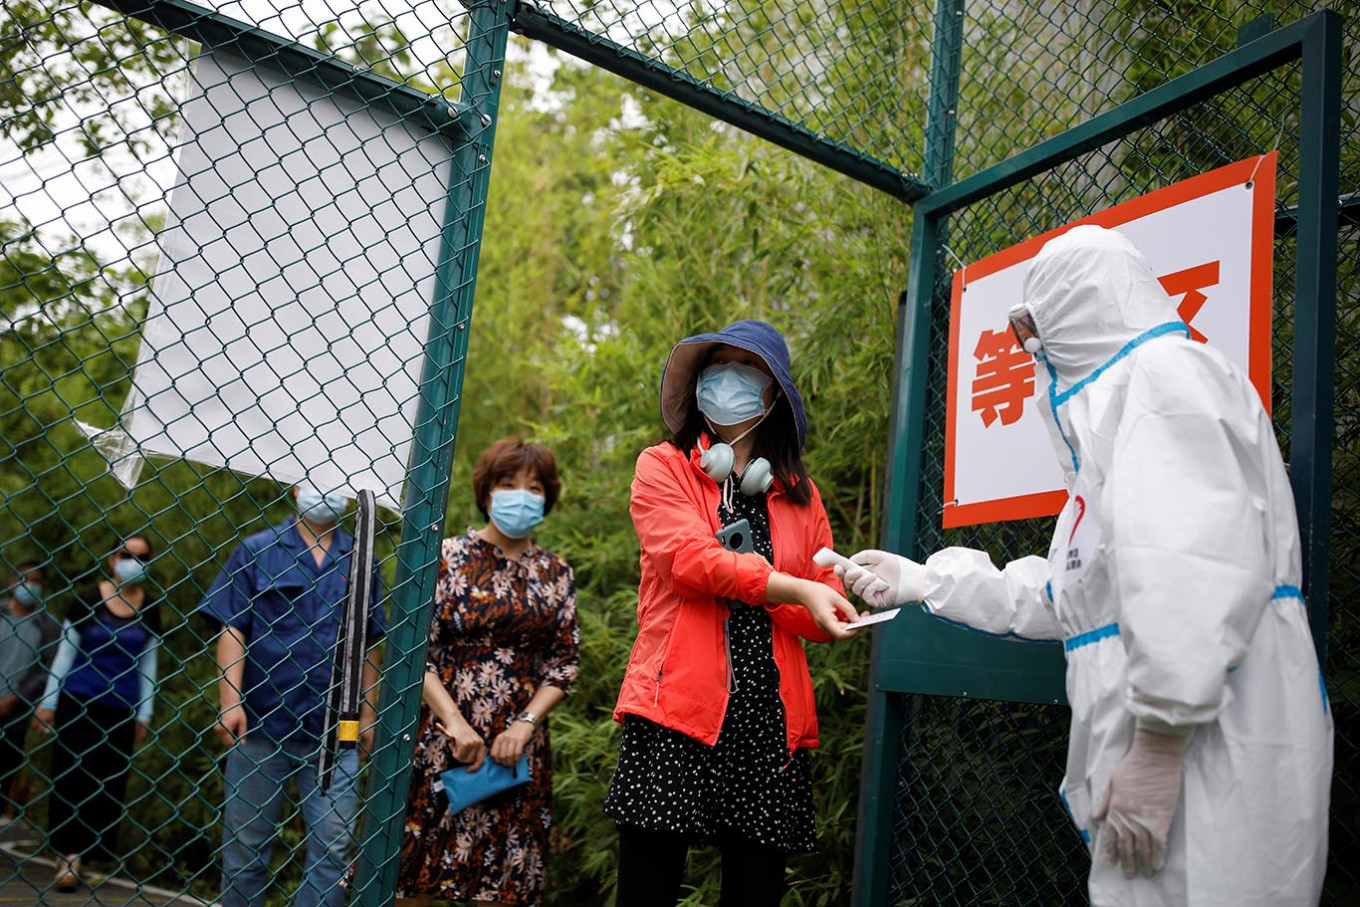 Fall in coronavirus cases in China amid fears over second surge